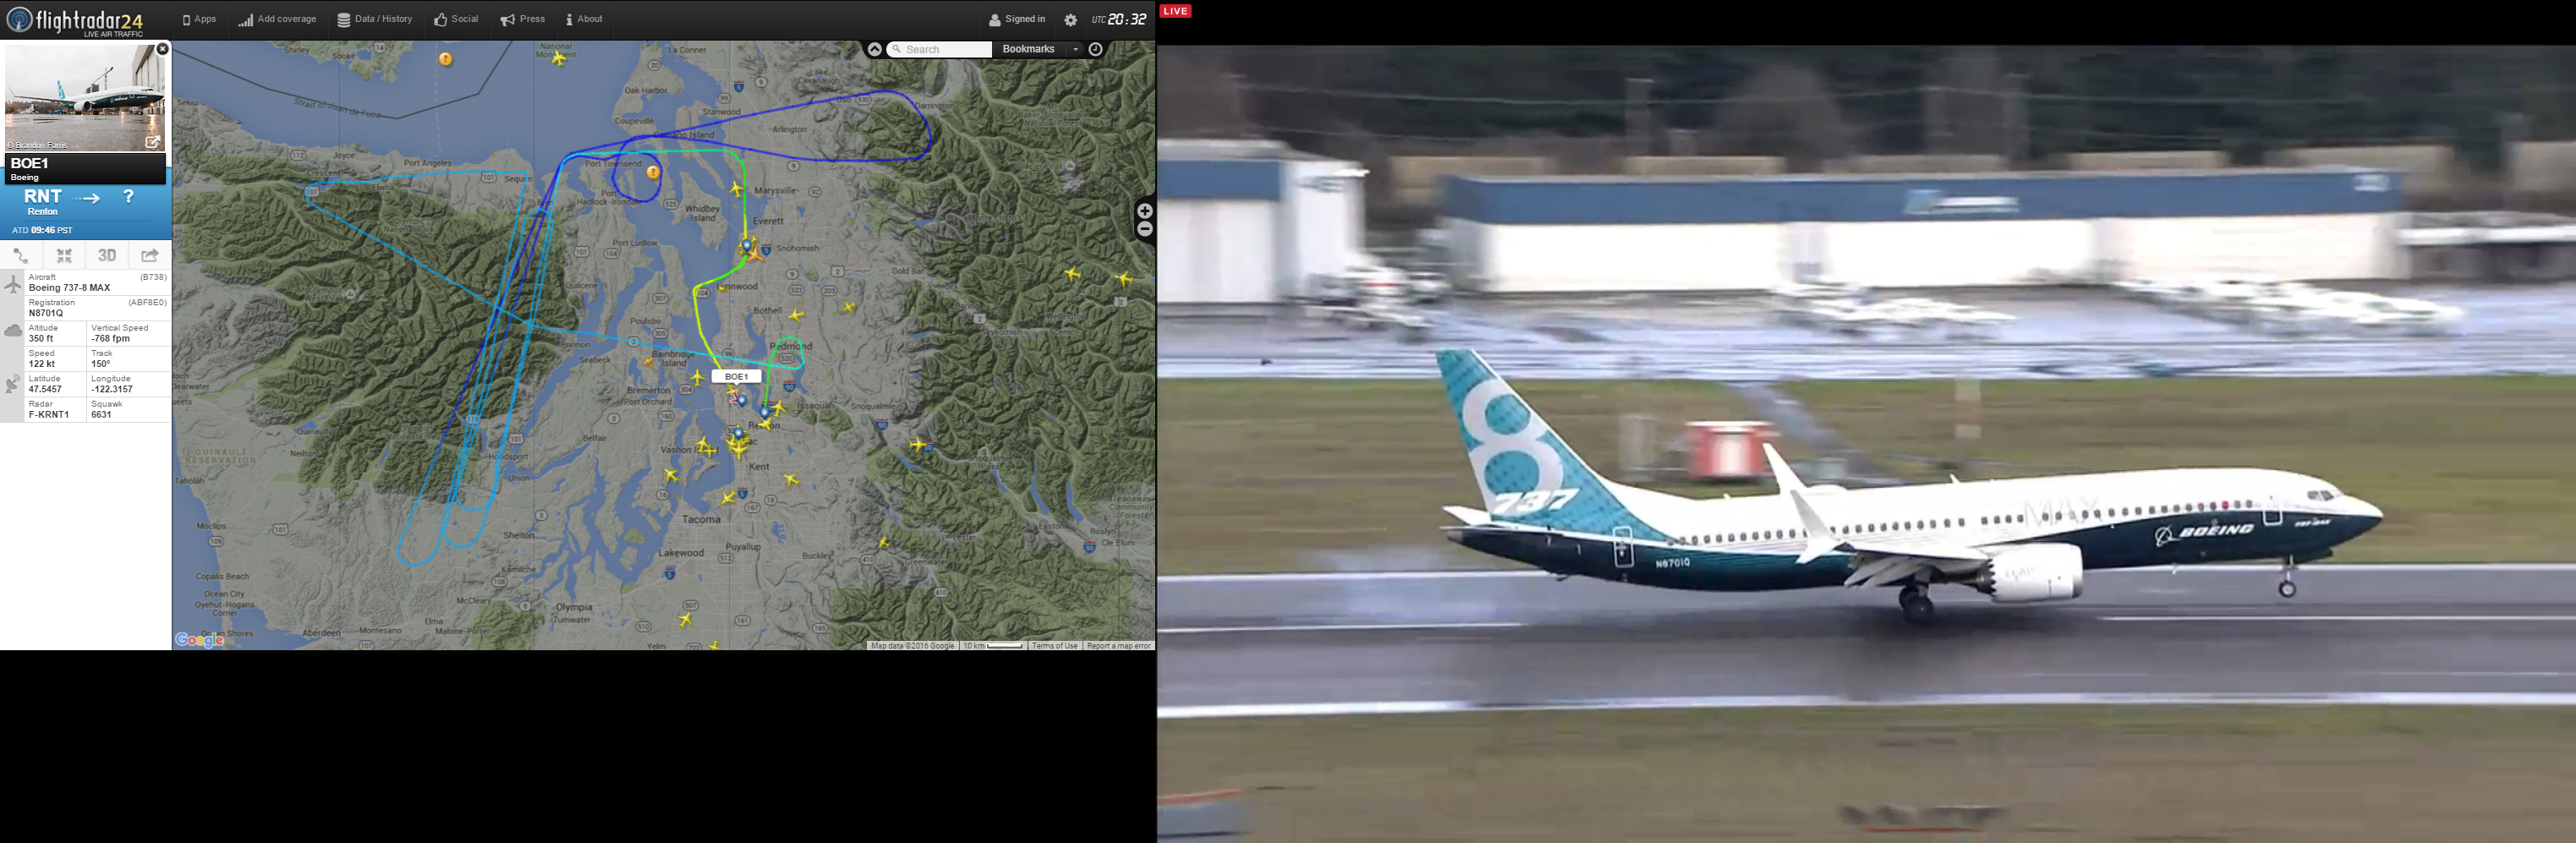 Boeing 737 MAX First Flight (January 29, 2016): FlightRadar24.com Track and Live Stream Landing